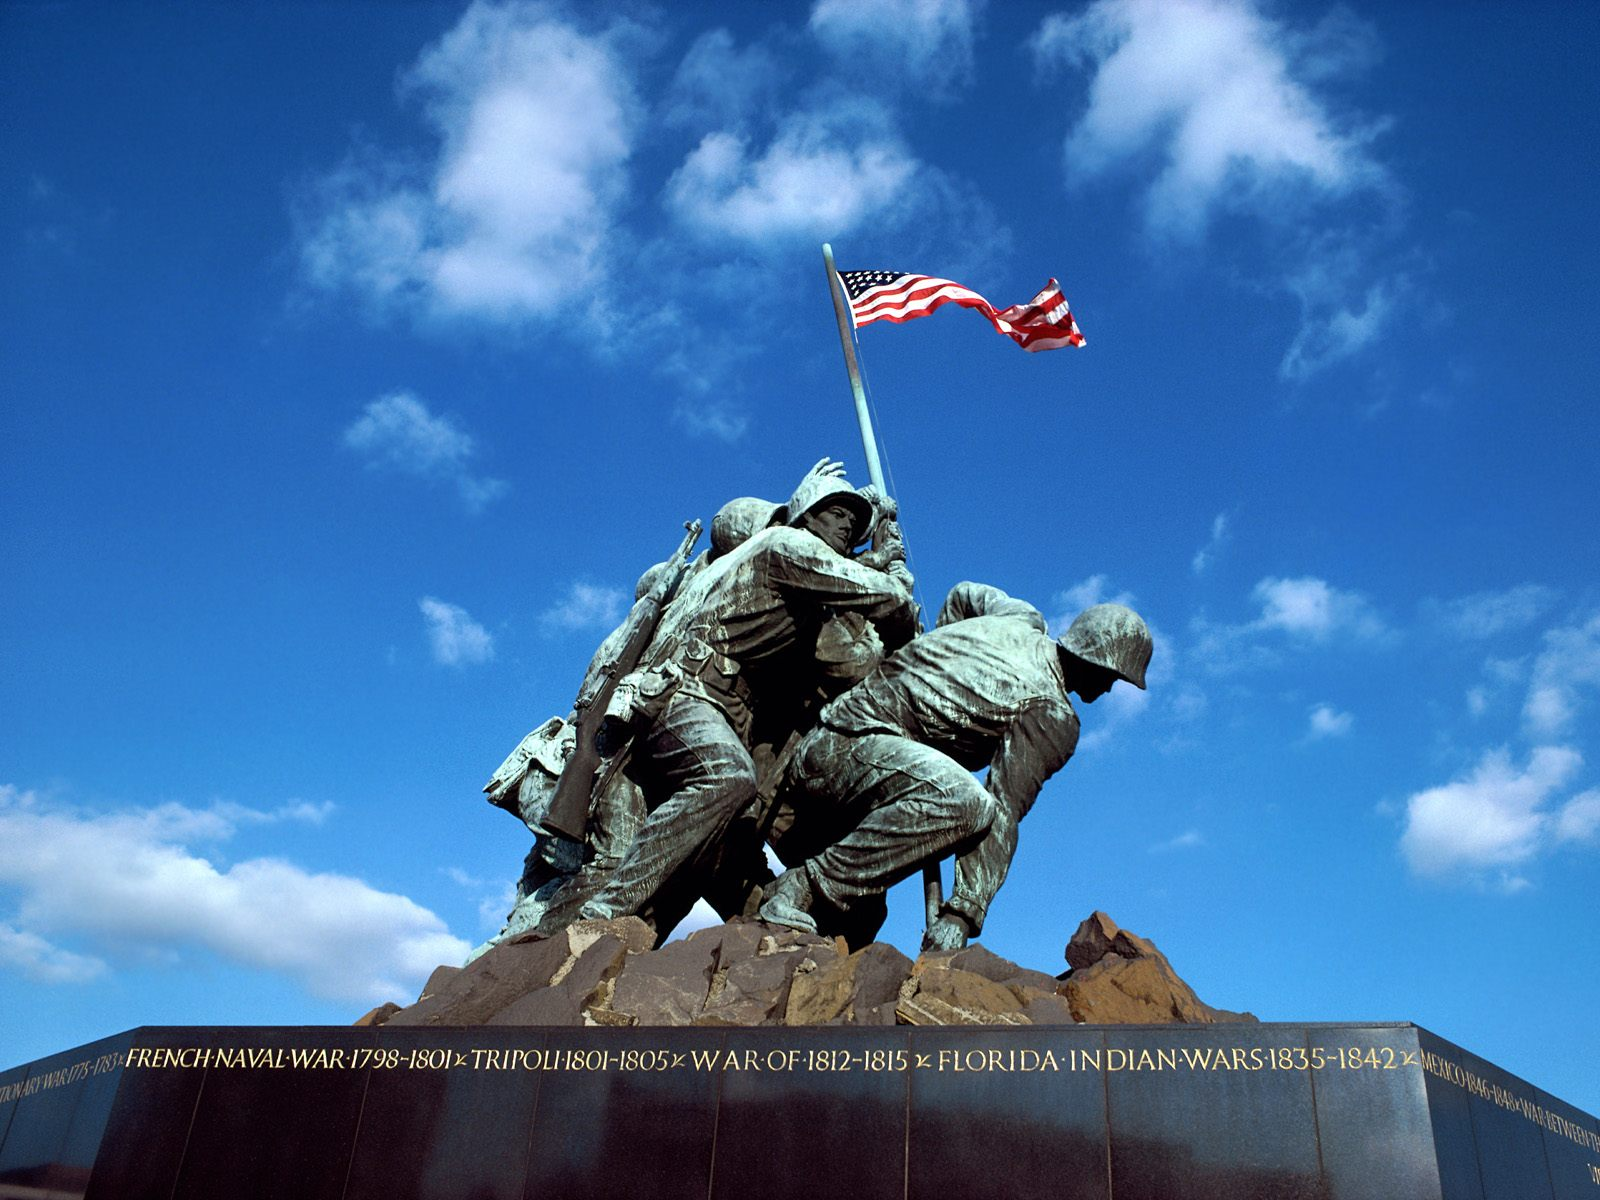 Free download Memorial Day wallpaper 1600x1200 001